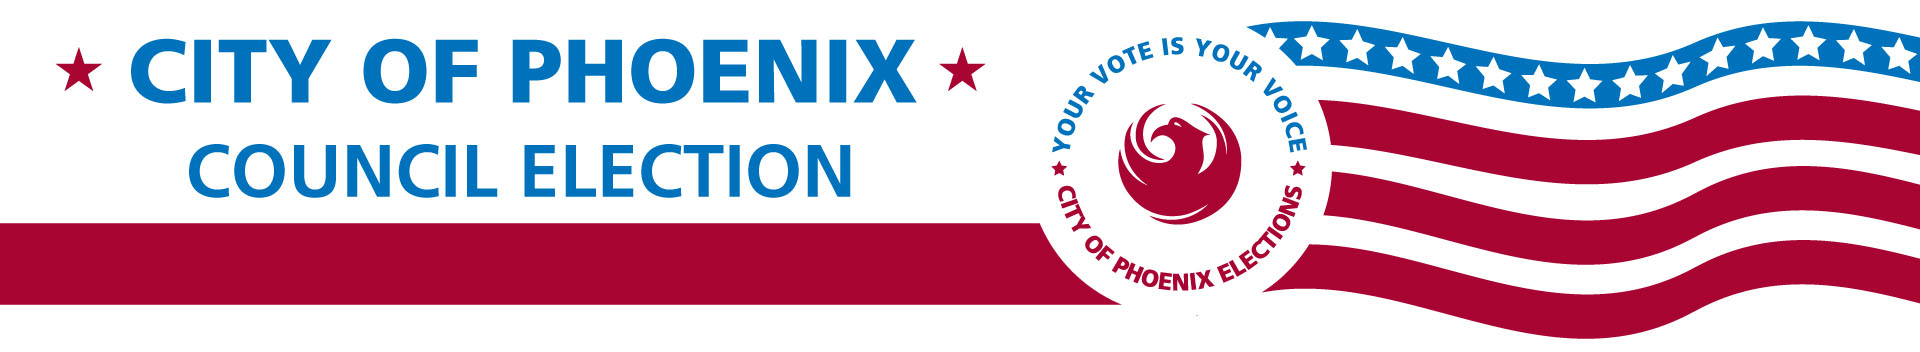 Banner: City of Phoenix official election results